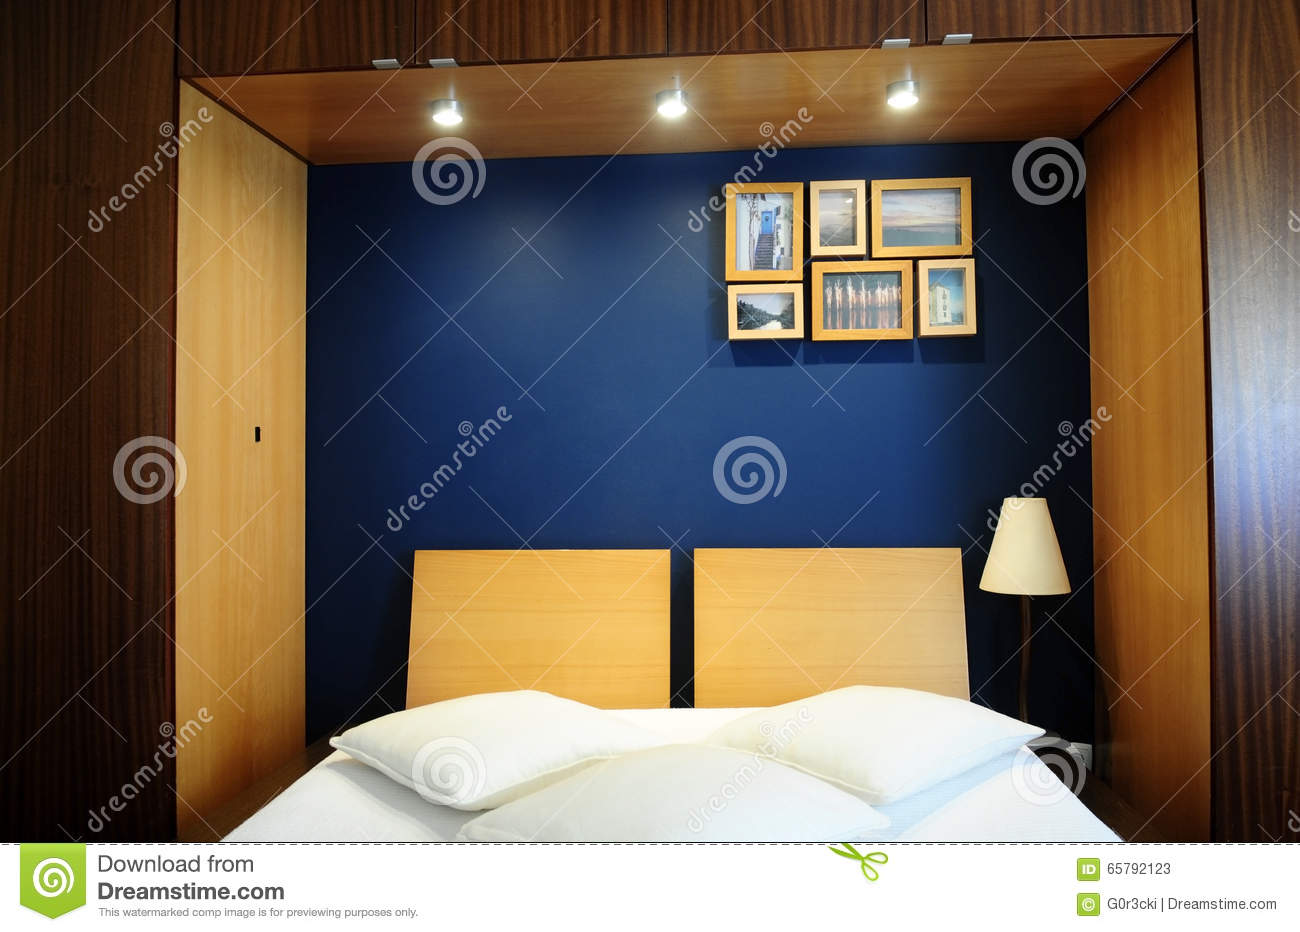 Cozy Bed Room With Blue Wall White Covers And Wooden